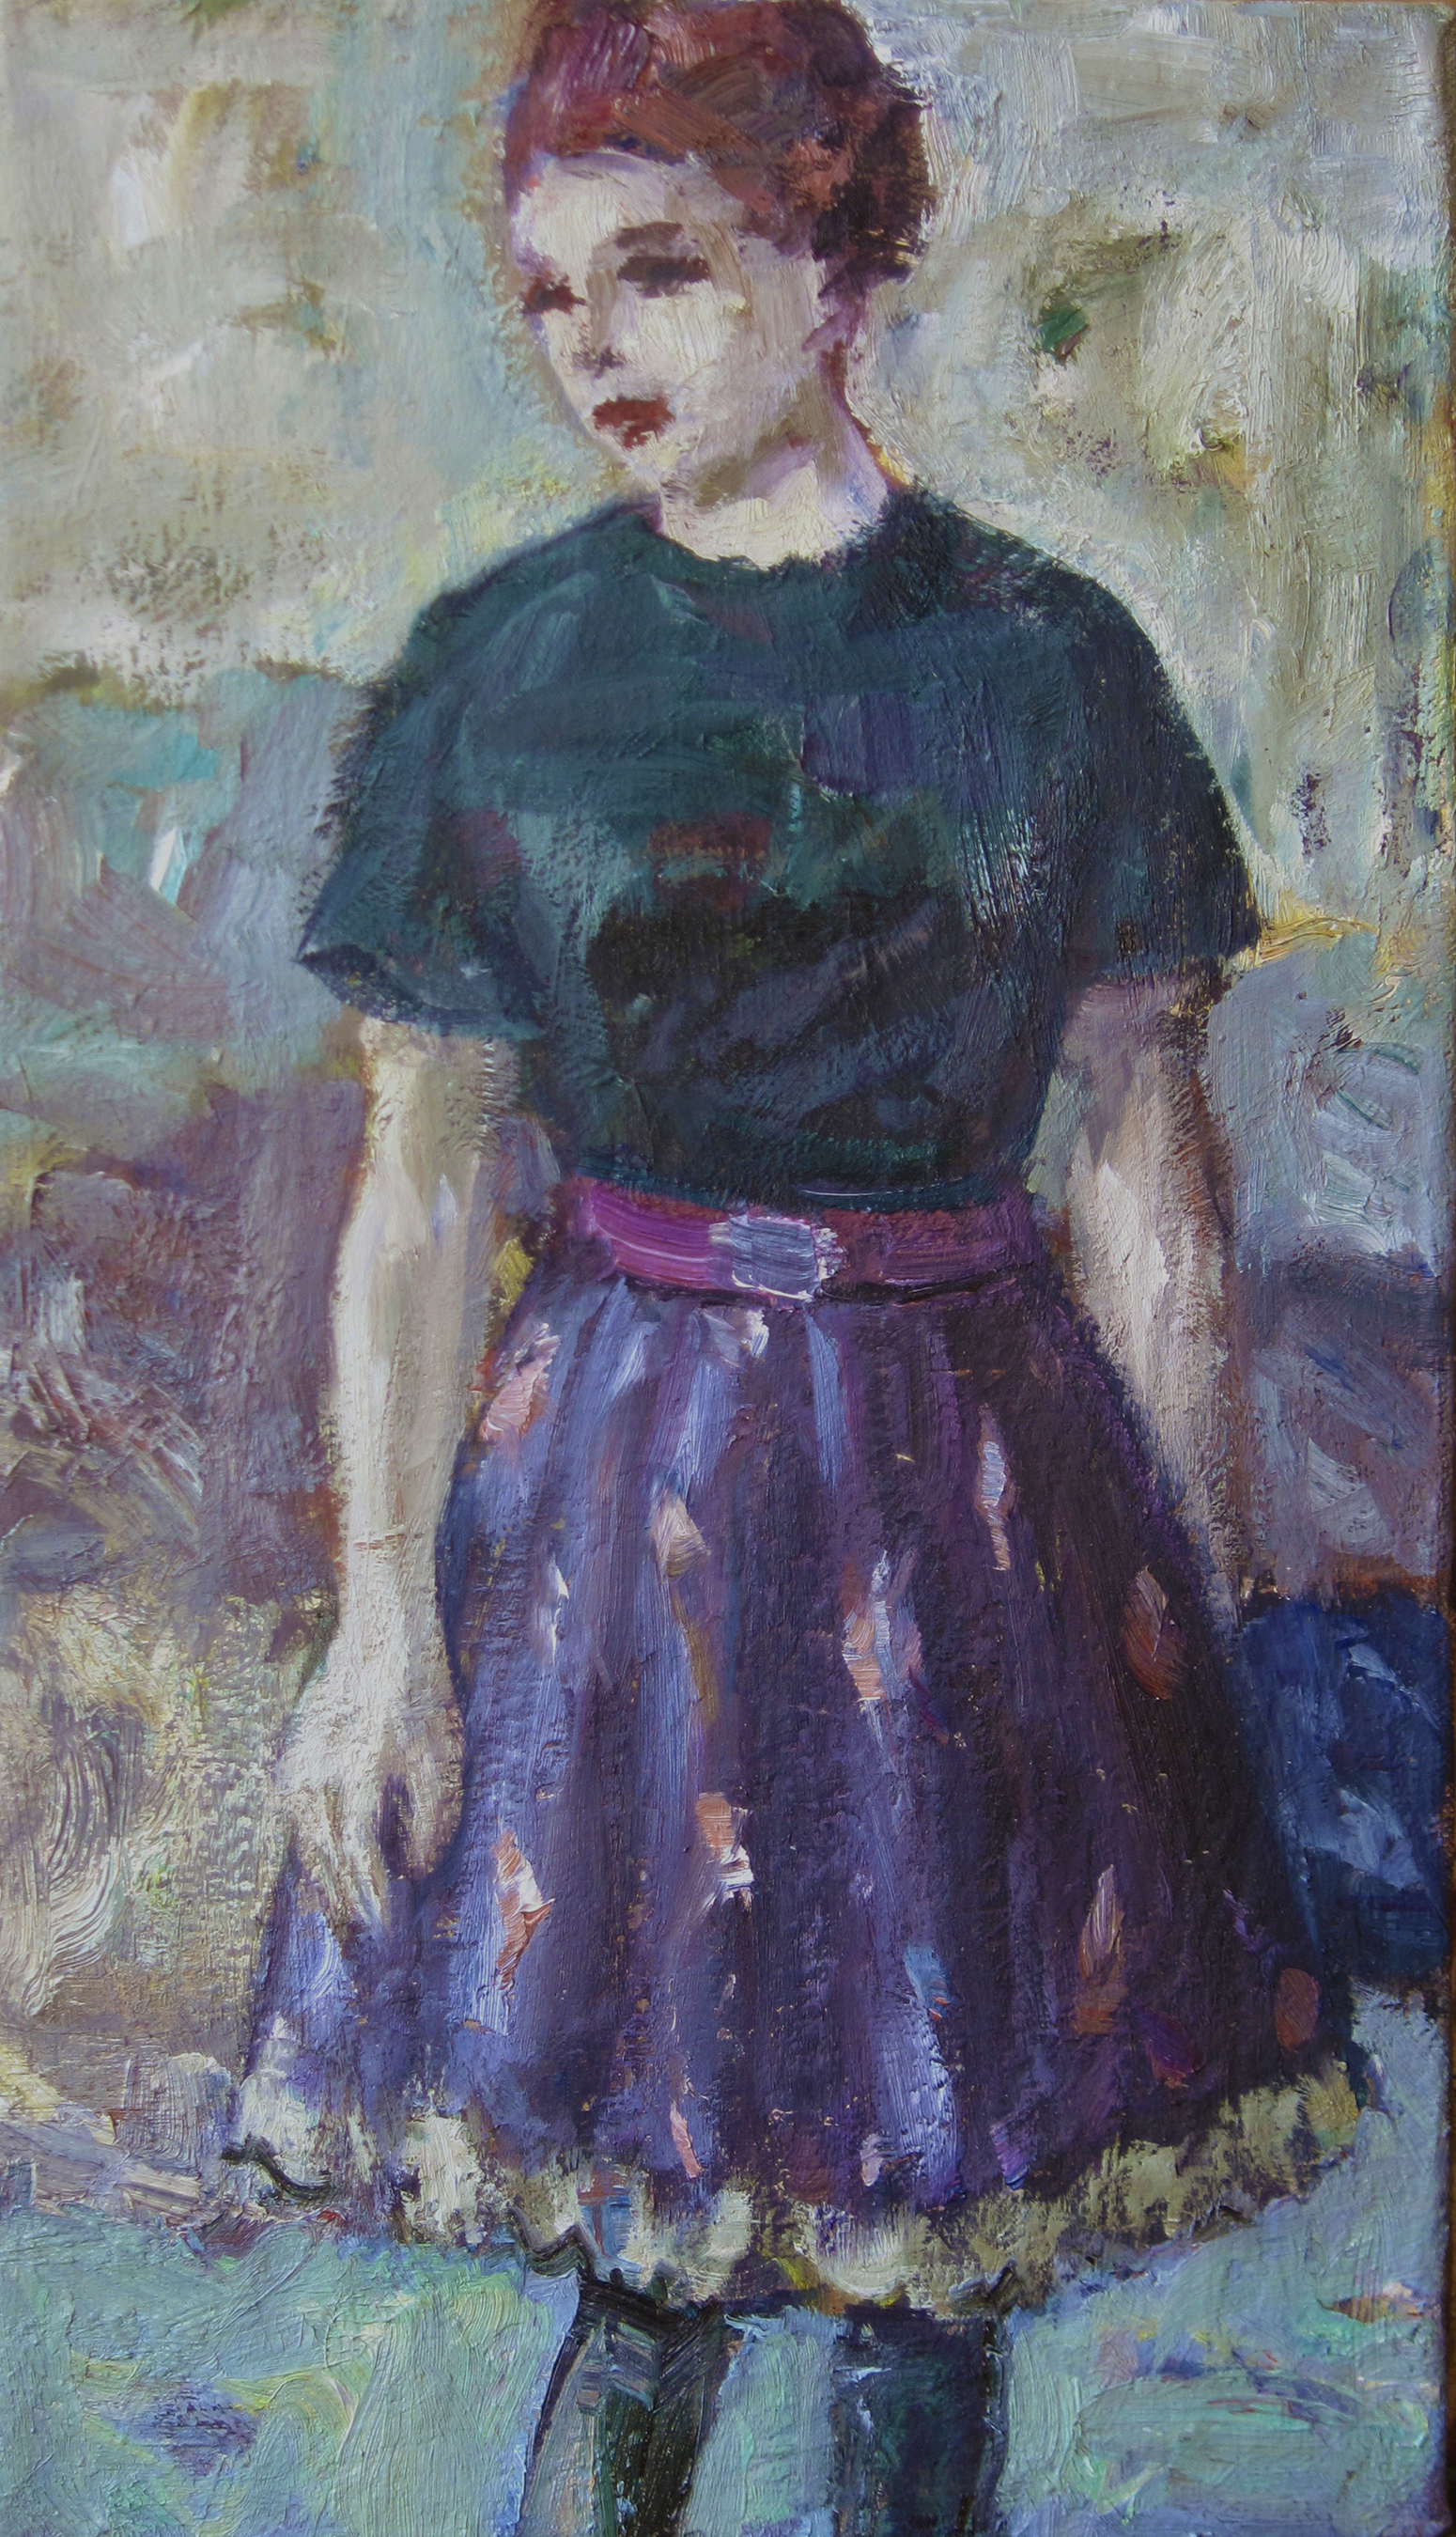 Young Girl With Full Skirt